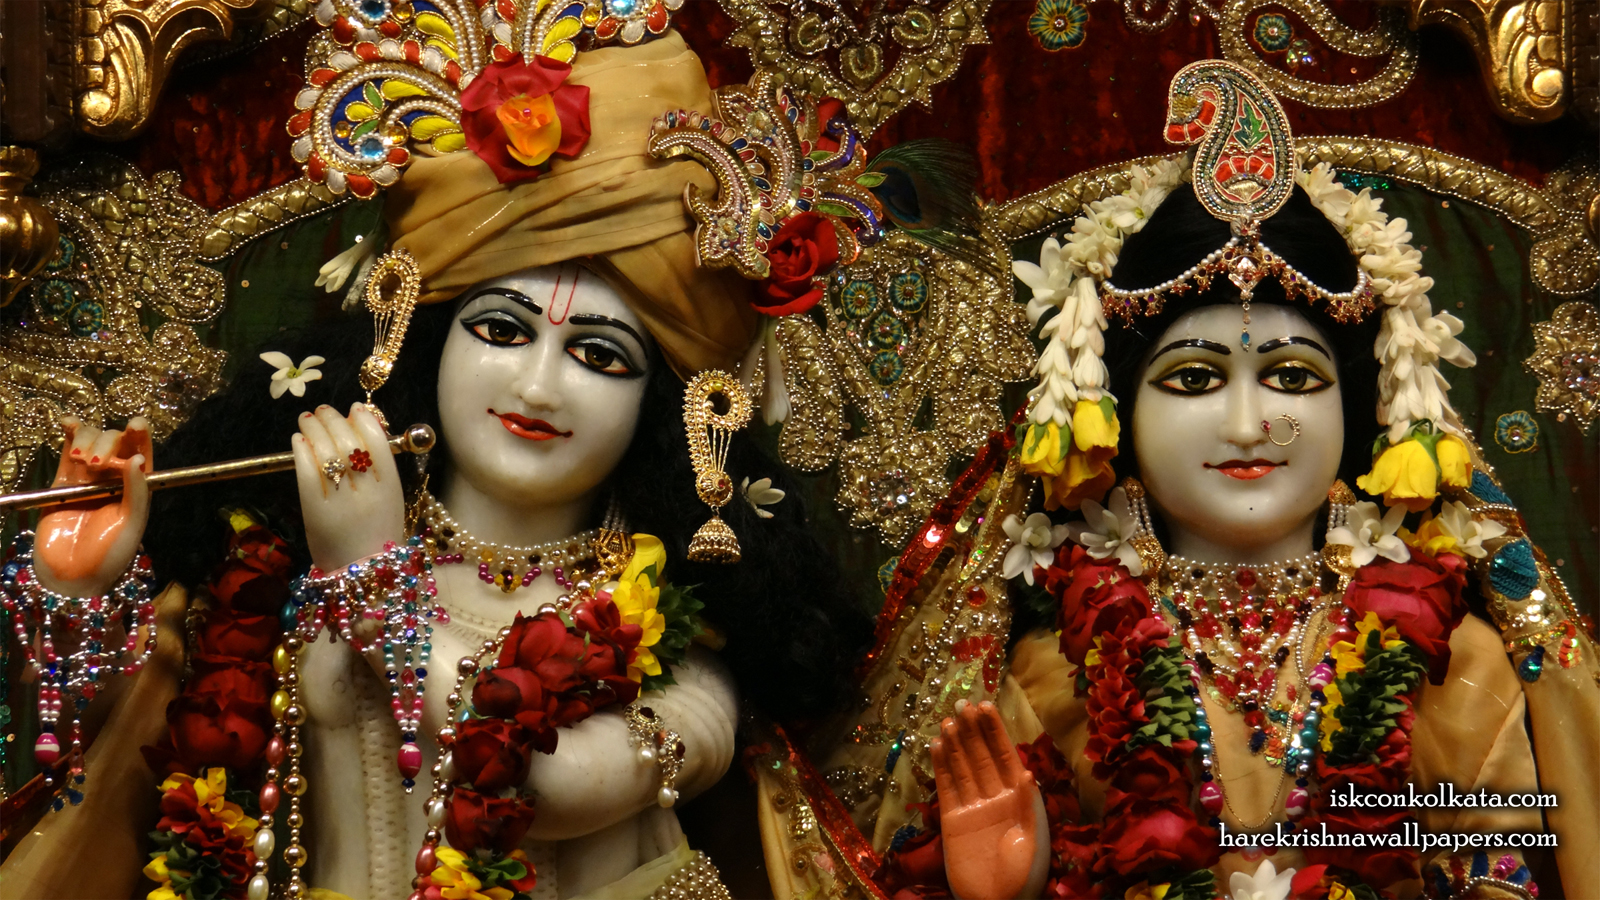 Sri Sri Radha Govinda Close up Wallpaper (009) Size 1600x900 Download